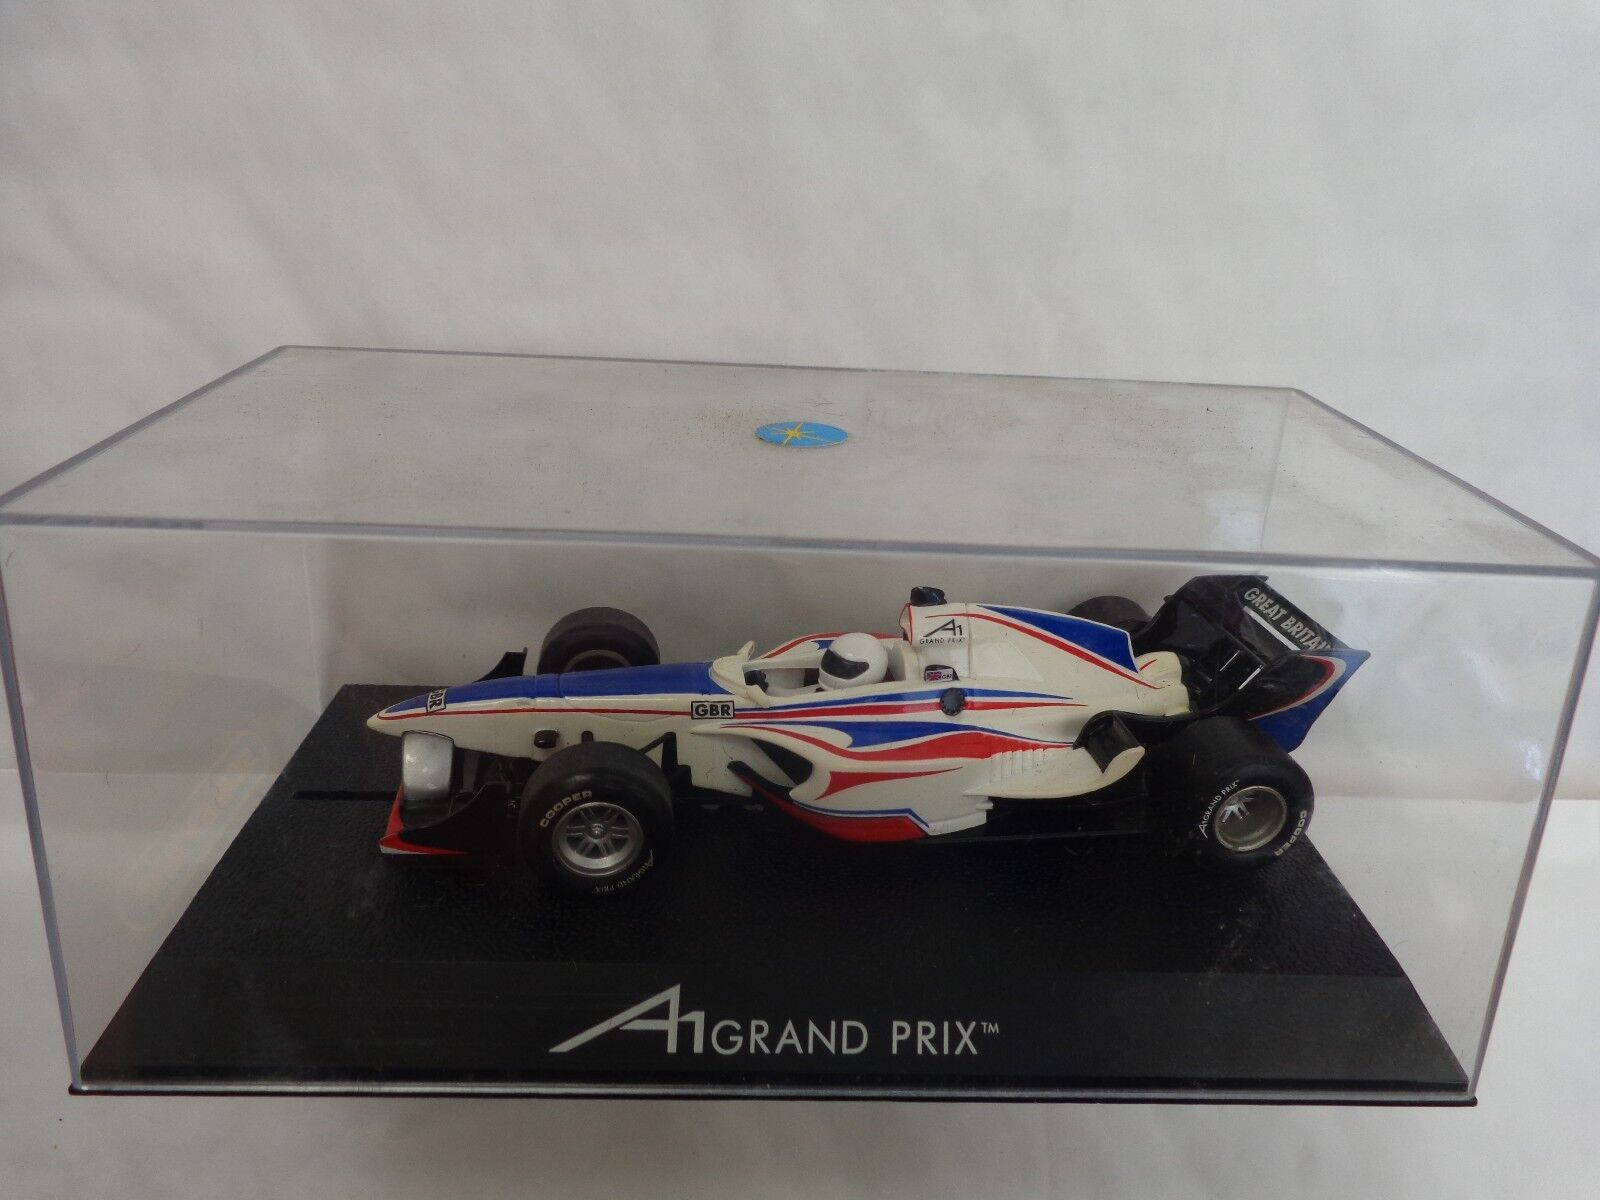 HORNBY SCALEXTRIC - A1 GRAND PRIX TEAM GREAT BRITAIN F1 CAR C2706 BOXED